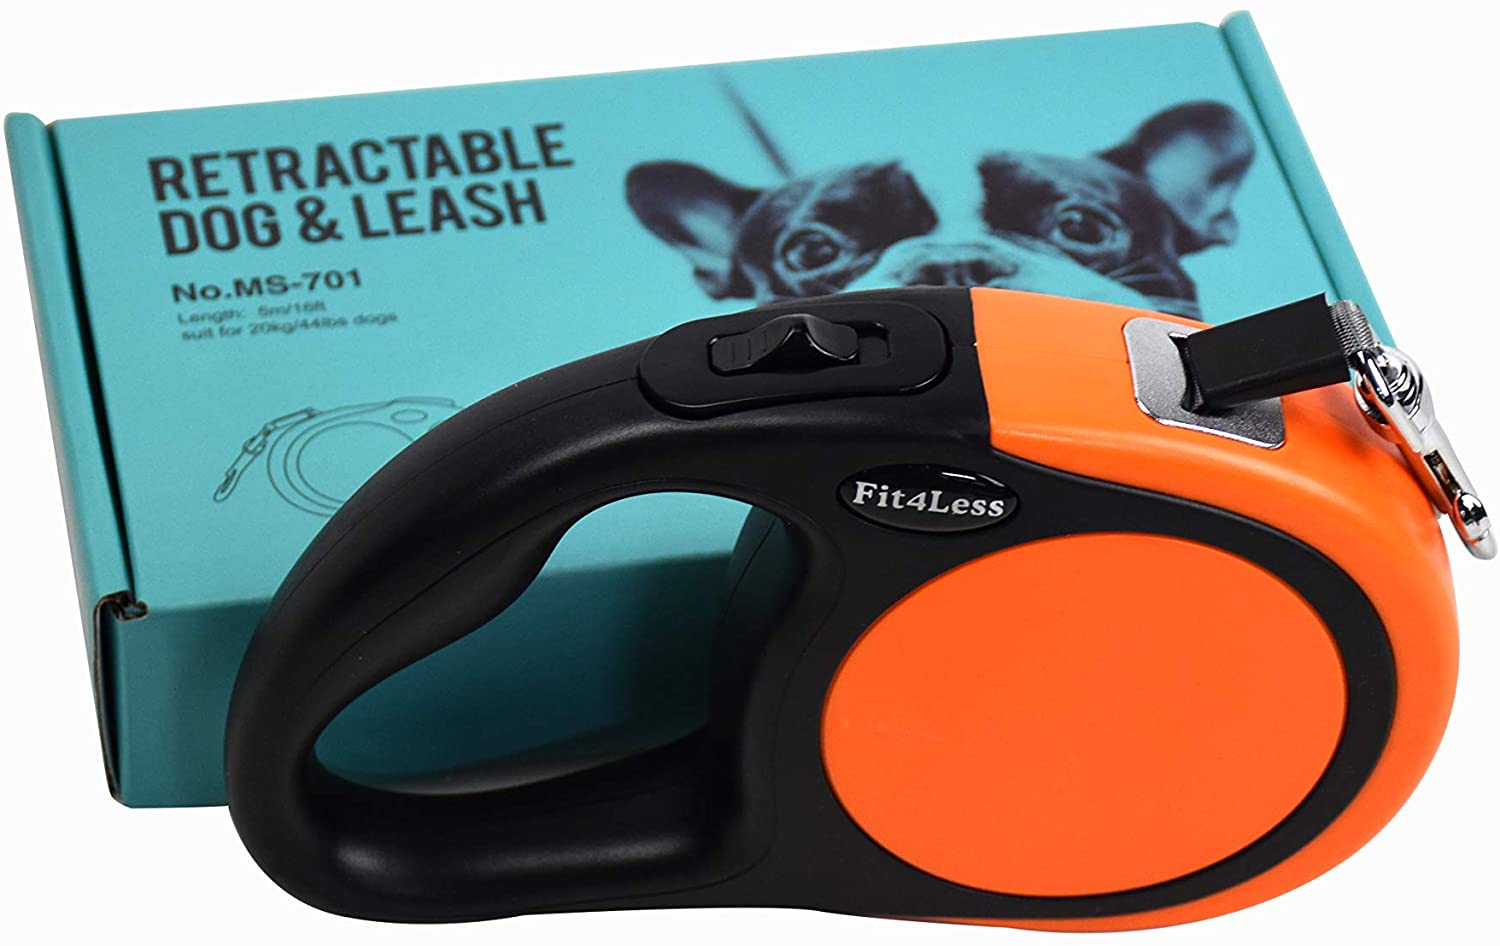 Fit4Less Retractable Dog Leash 16 ft Length Ideal for Small and mid Size up to 55lbs, with one Button Break and Lock.